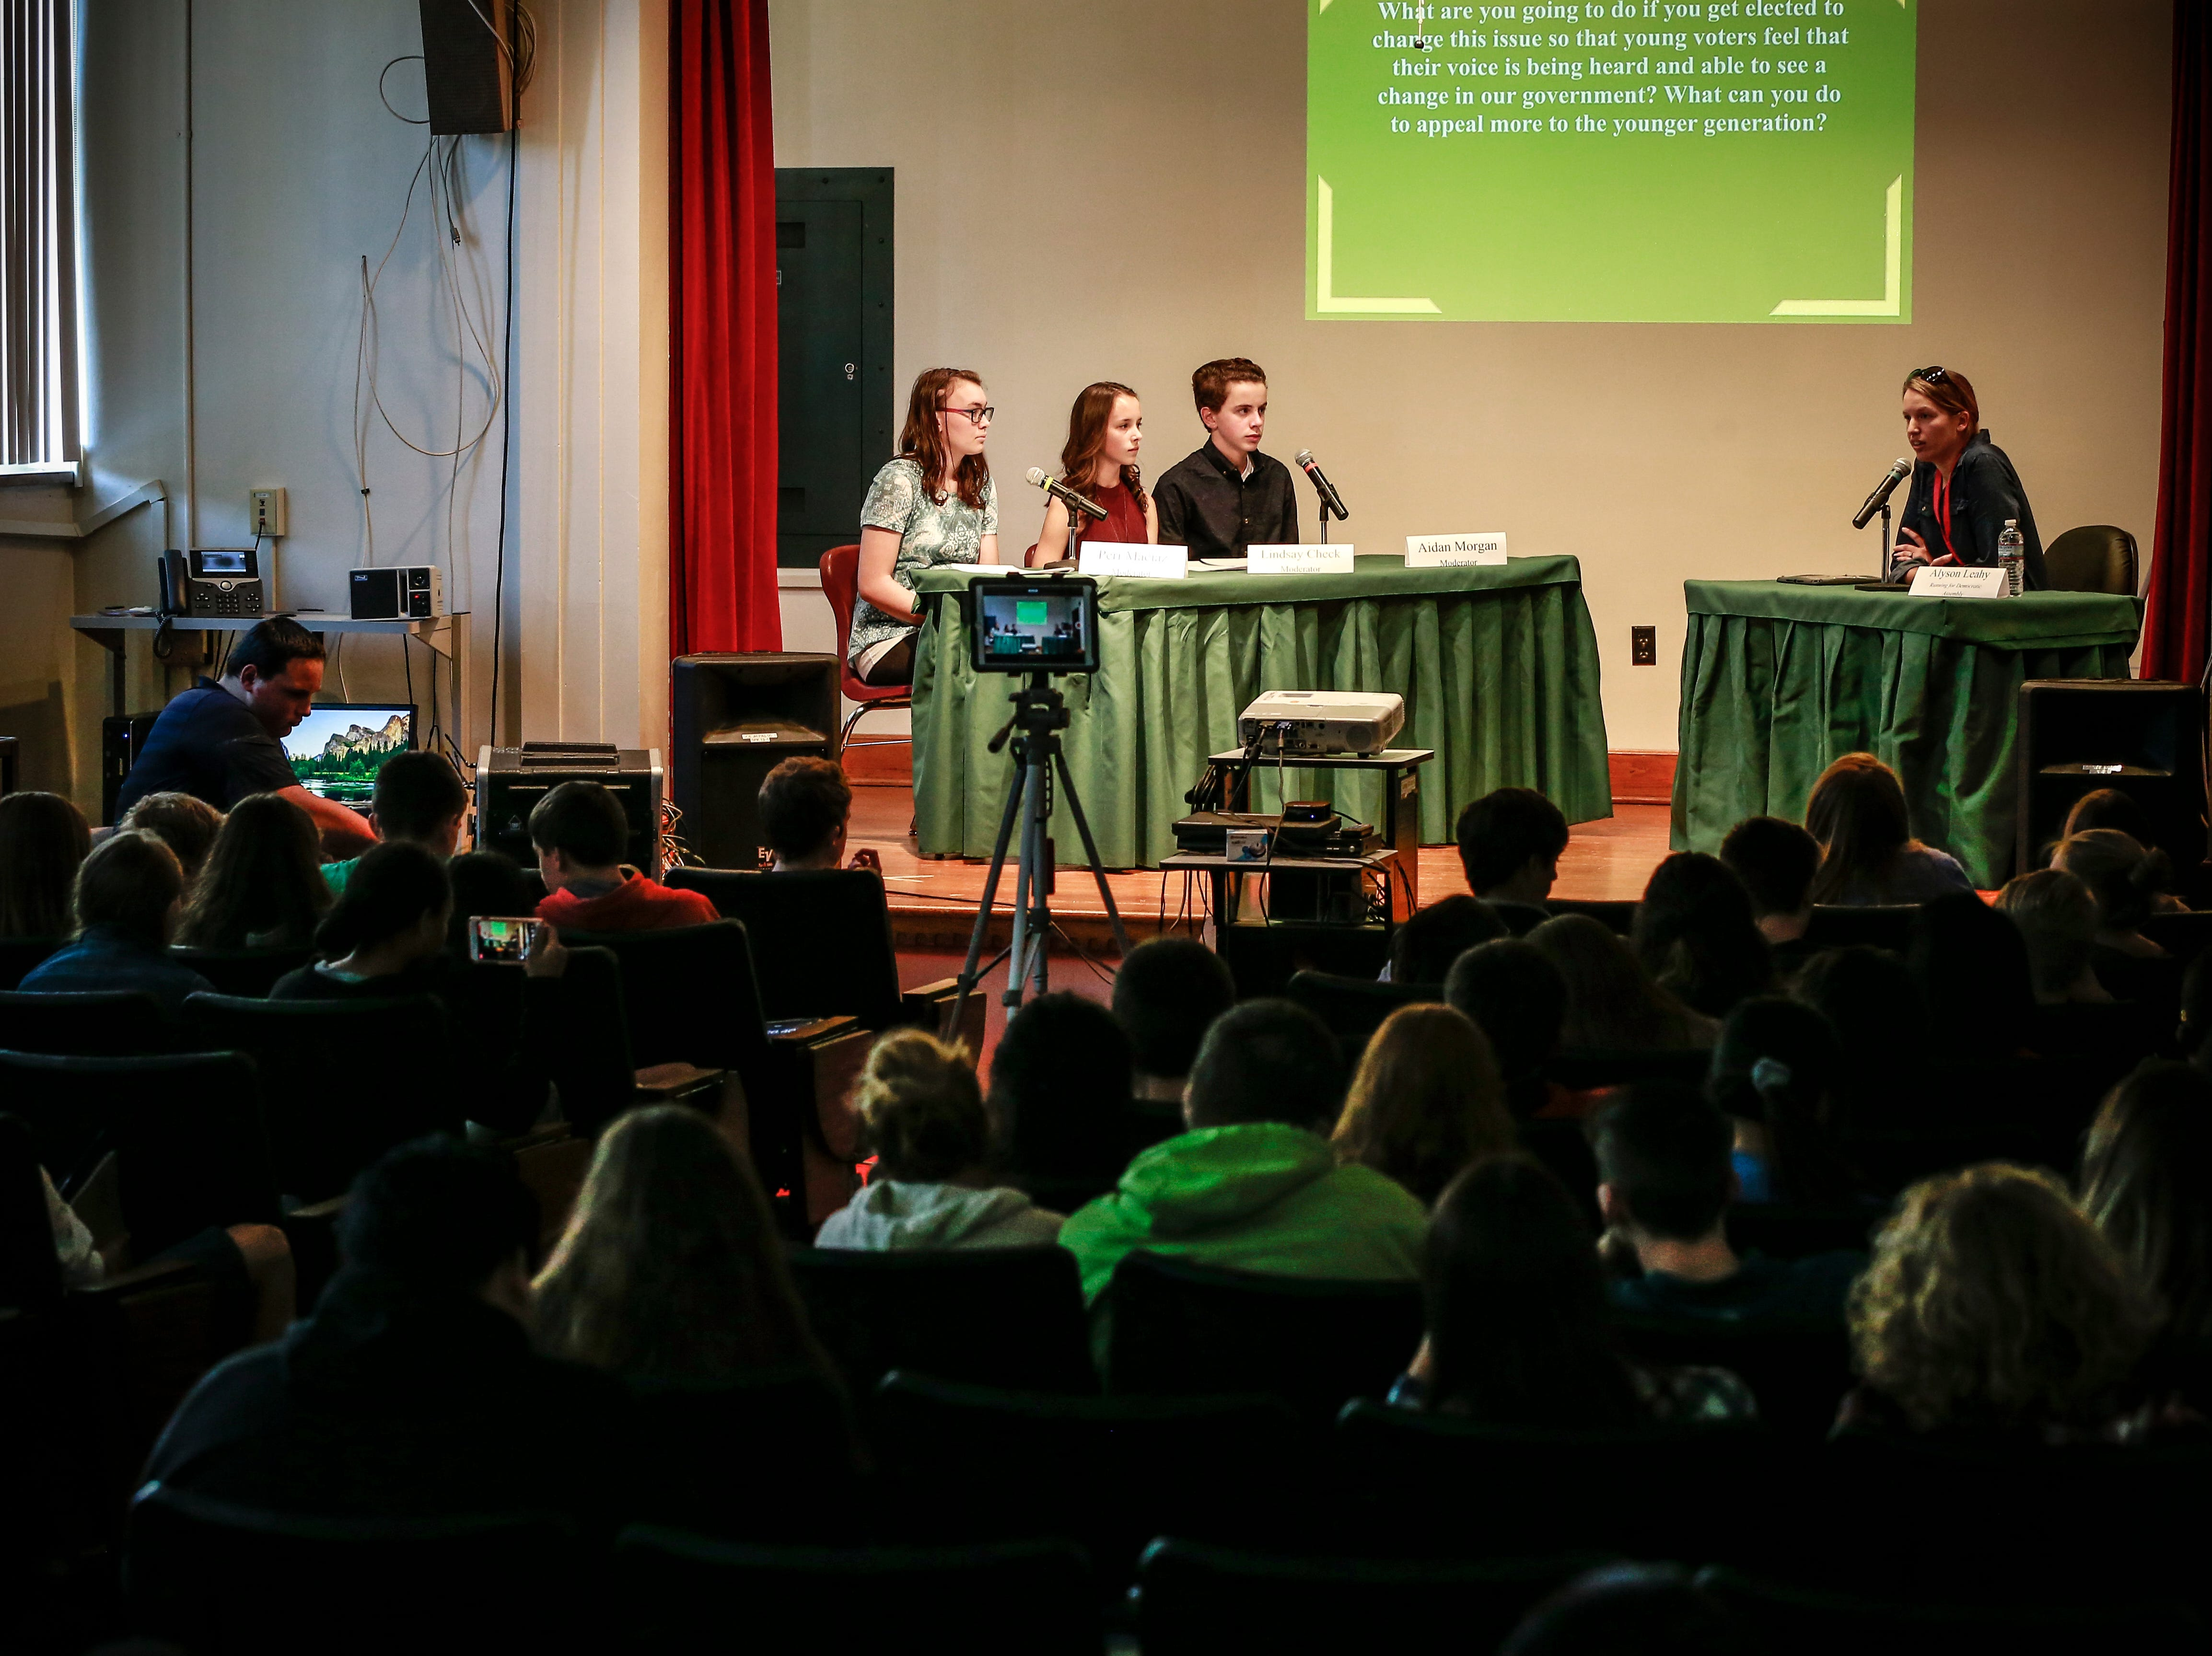 The 9th grade students held an Action Civics Political Forum Wednesday, Oct. 17, 2018, at D.C. Everest Junior High School auditorium in Weston, Wis. T'xer Zhon Kha/USA TODAY NETWORK-Wisconsin